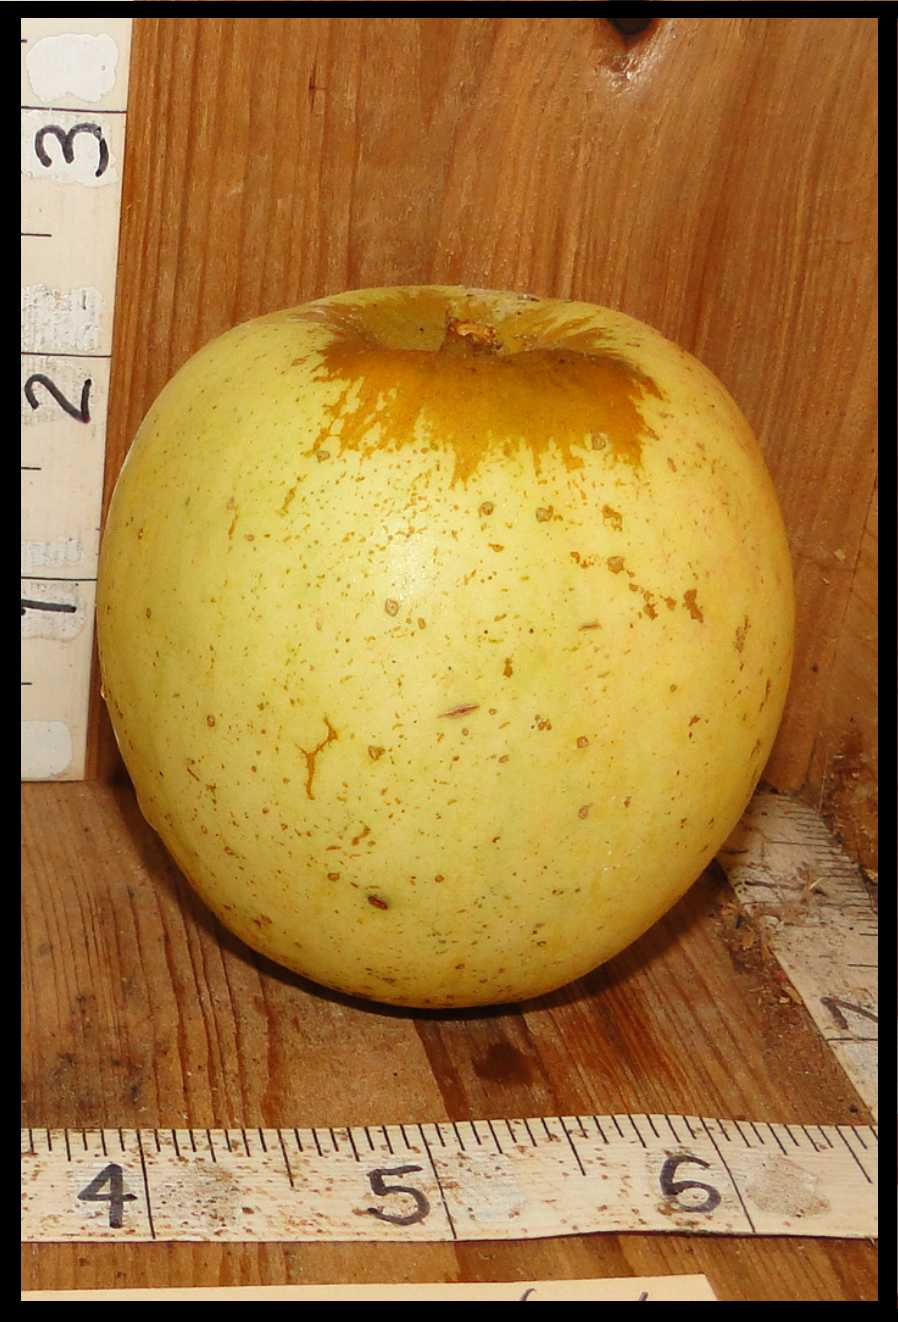 pale yellow apple with rough tan skin around stem and covered in numerous rough brown dots of varying sizes